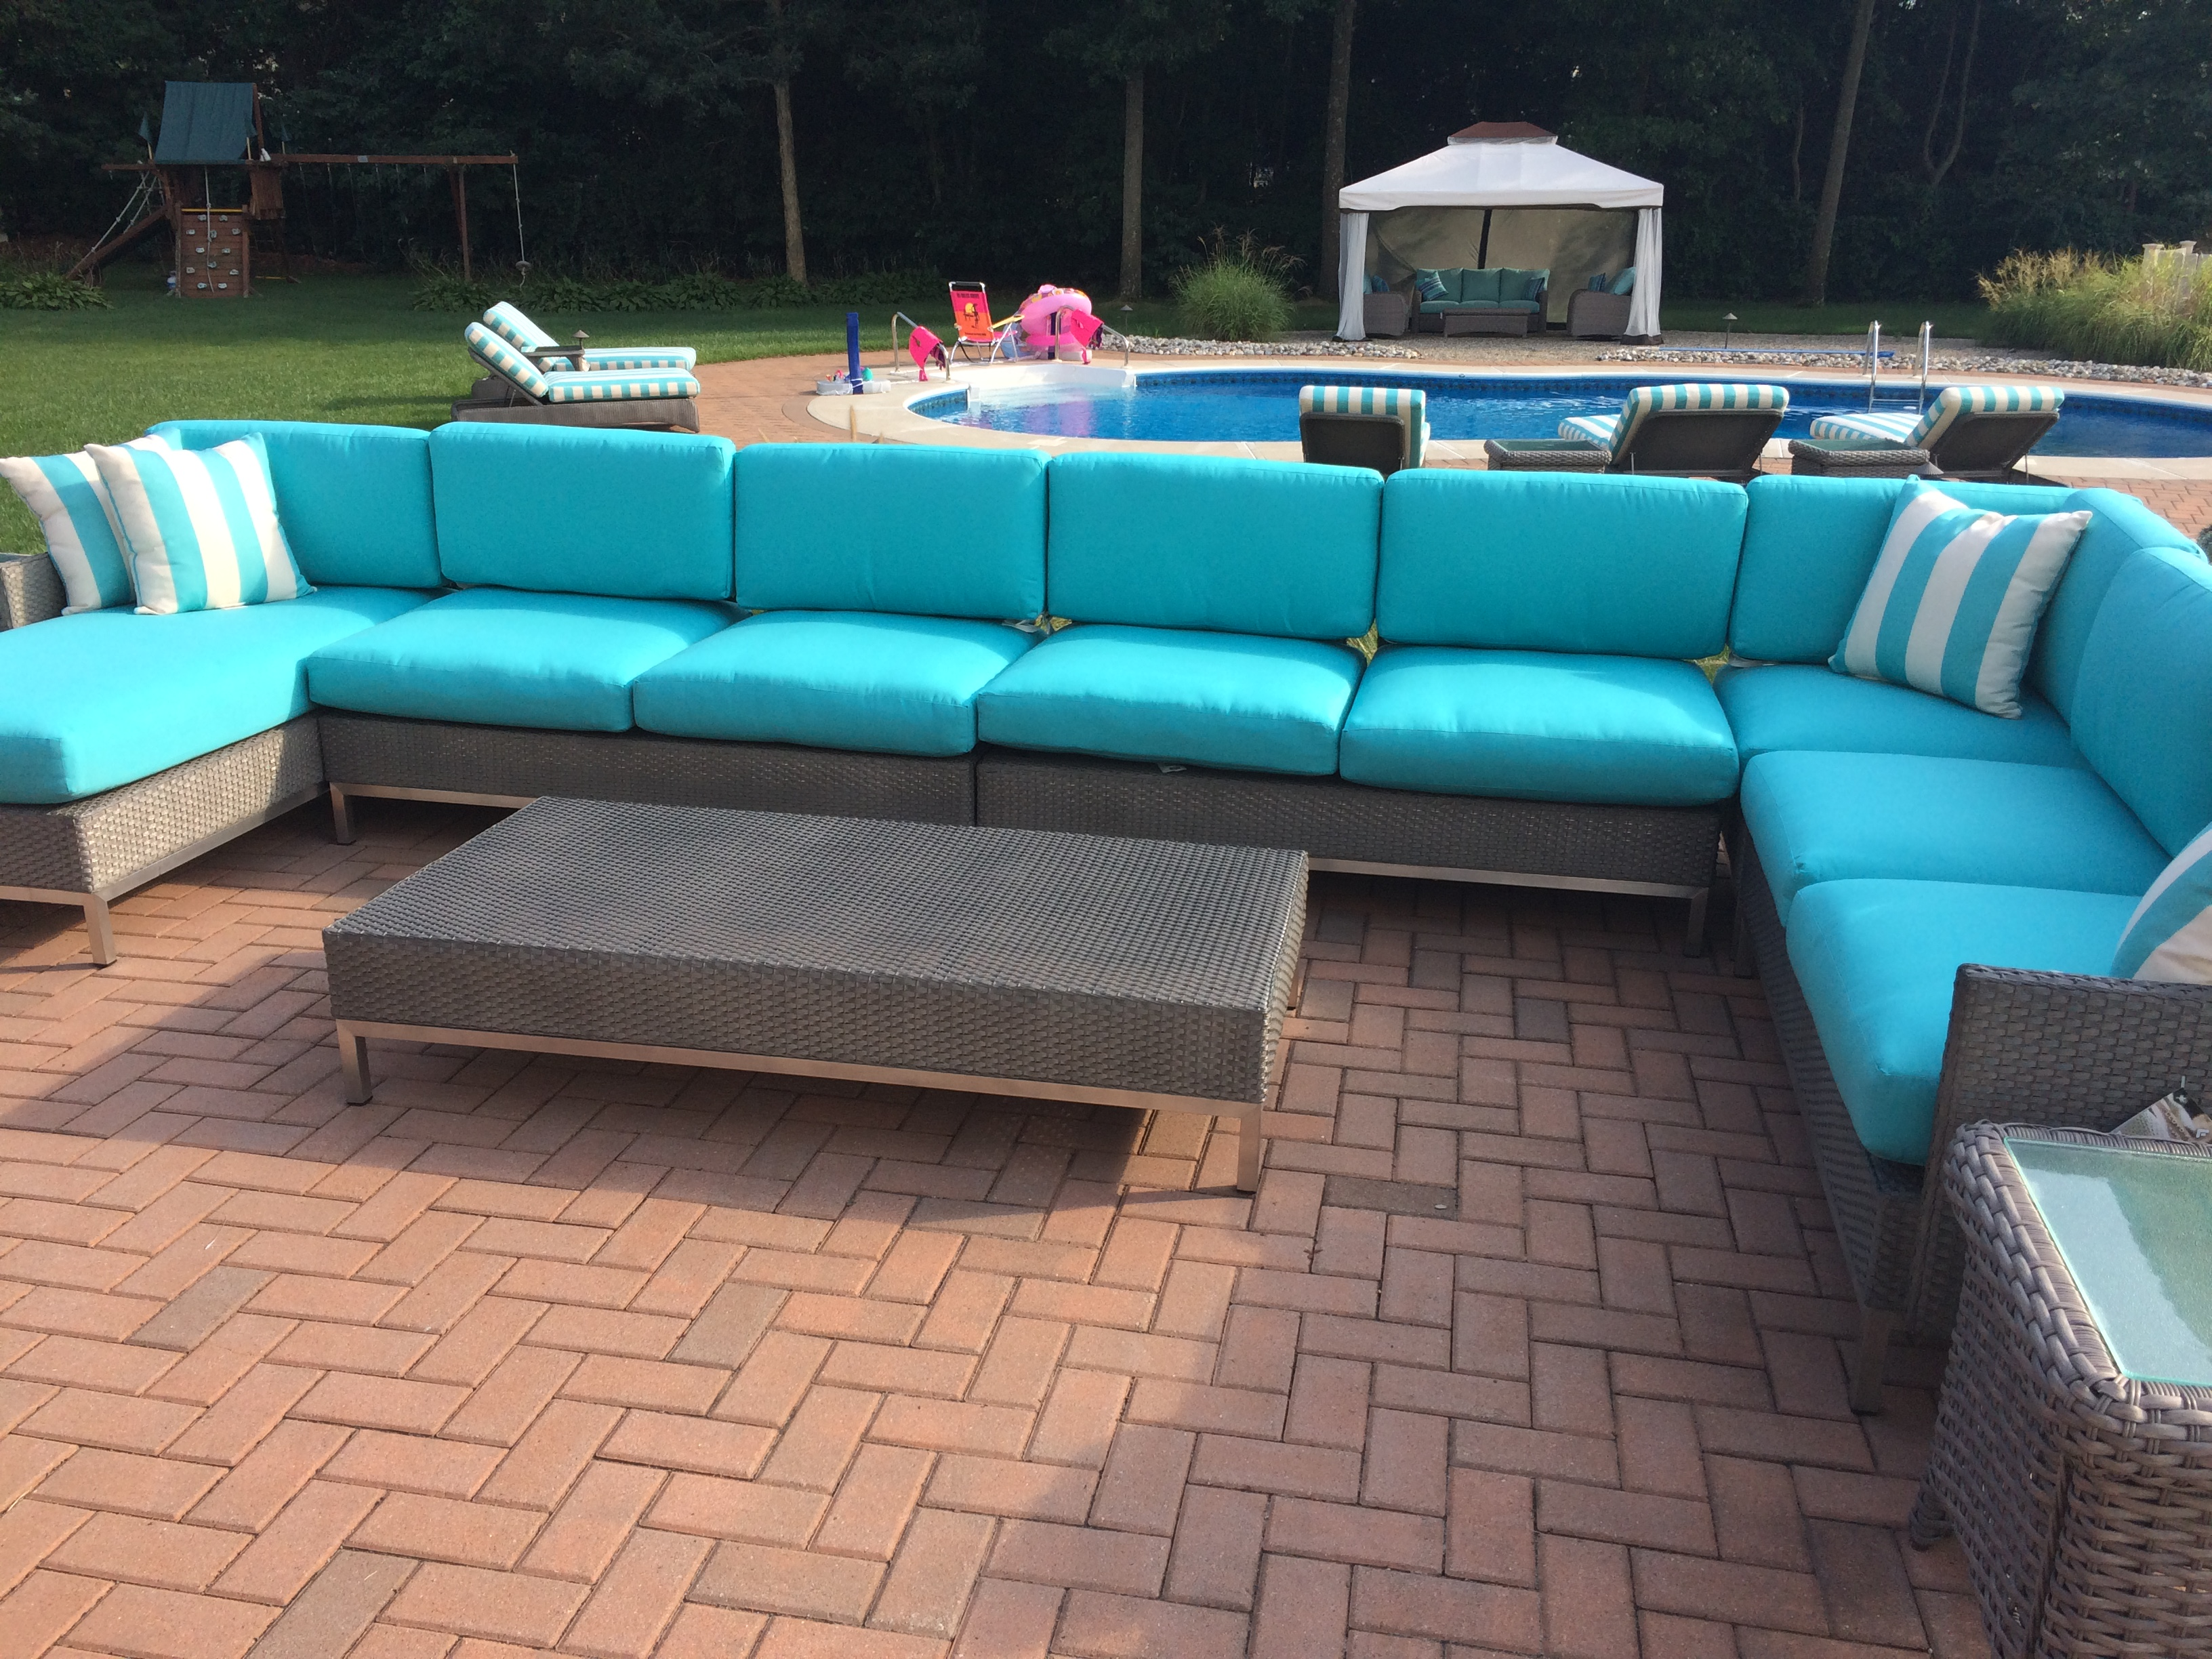 Grand isle sectional cedar ridge fire pit table seabreeze at lacey forked river nj